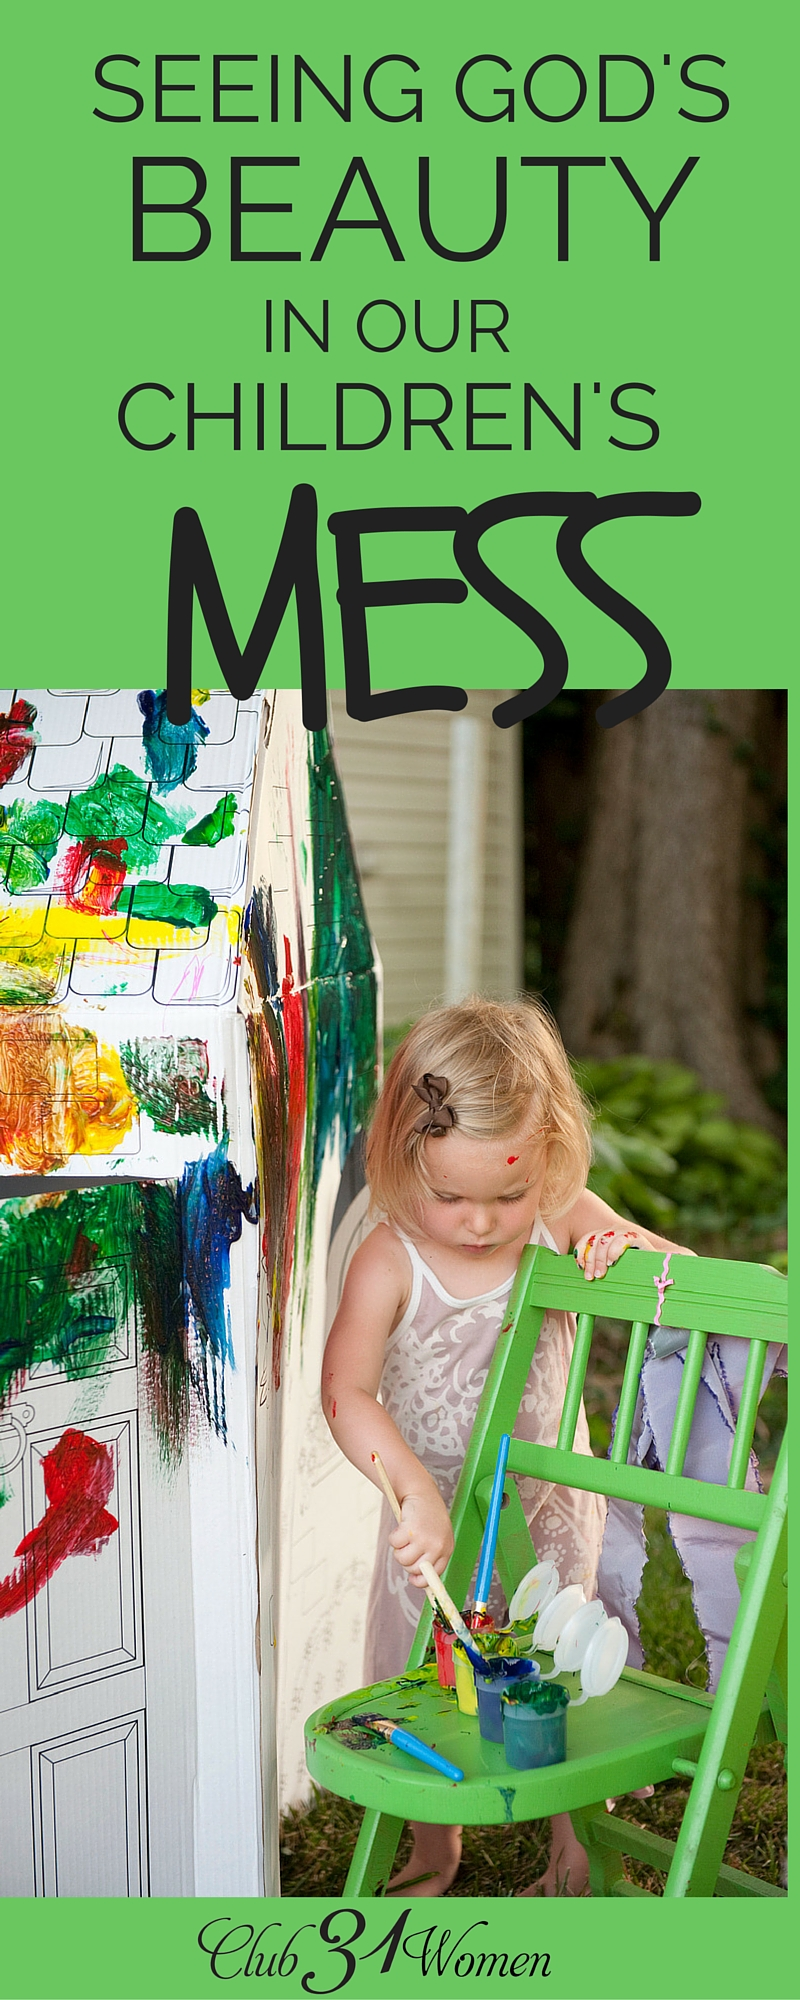 Stepping back and letting our kids create mess can be one of the hardest parts of being a parent. But here's how we can make the most of the messy moments! ~ Club31Women via @Club31Women